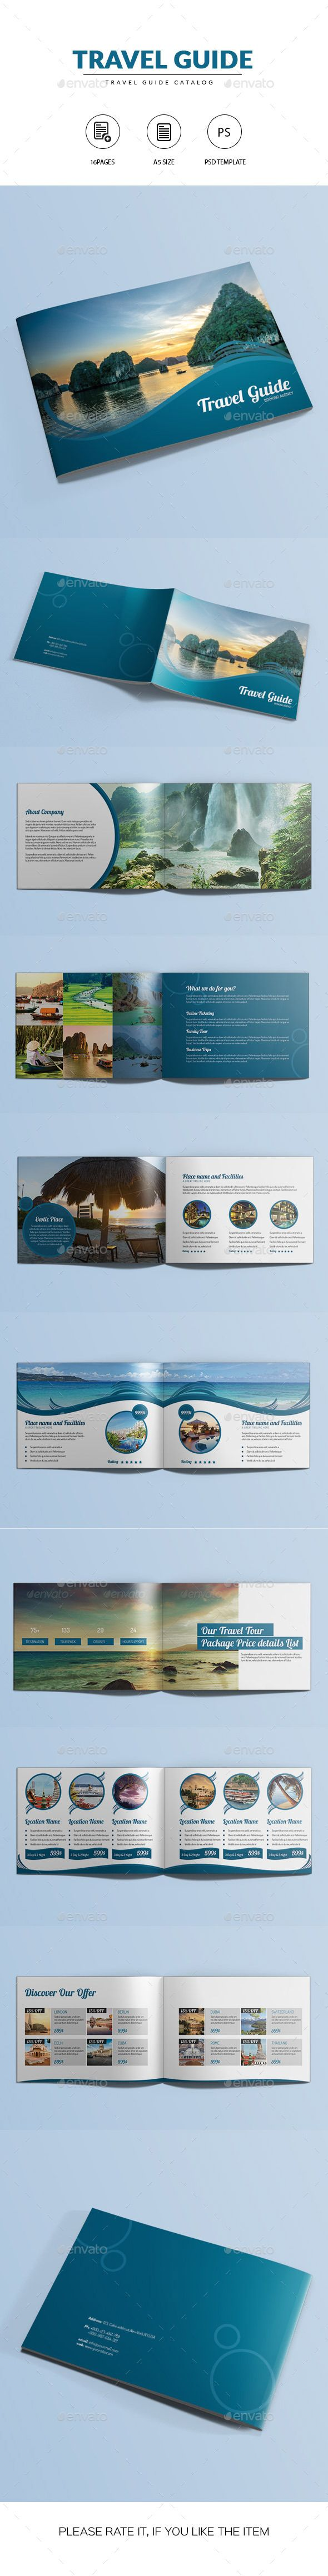 Travel Guide Catalog/Brochure - Catalog Brochure Template PSD. Download here: http://graphicriver.net/item/travel-guide-catalogbrochure/12782744?s_rank=1796&ref=yinkira